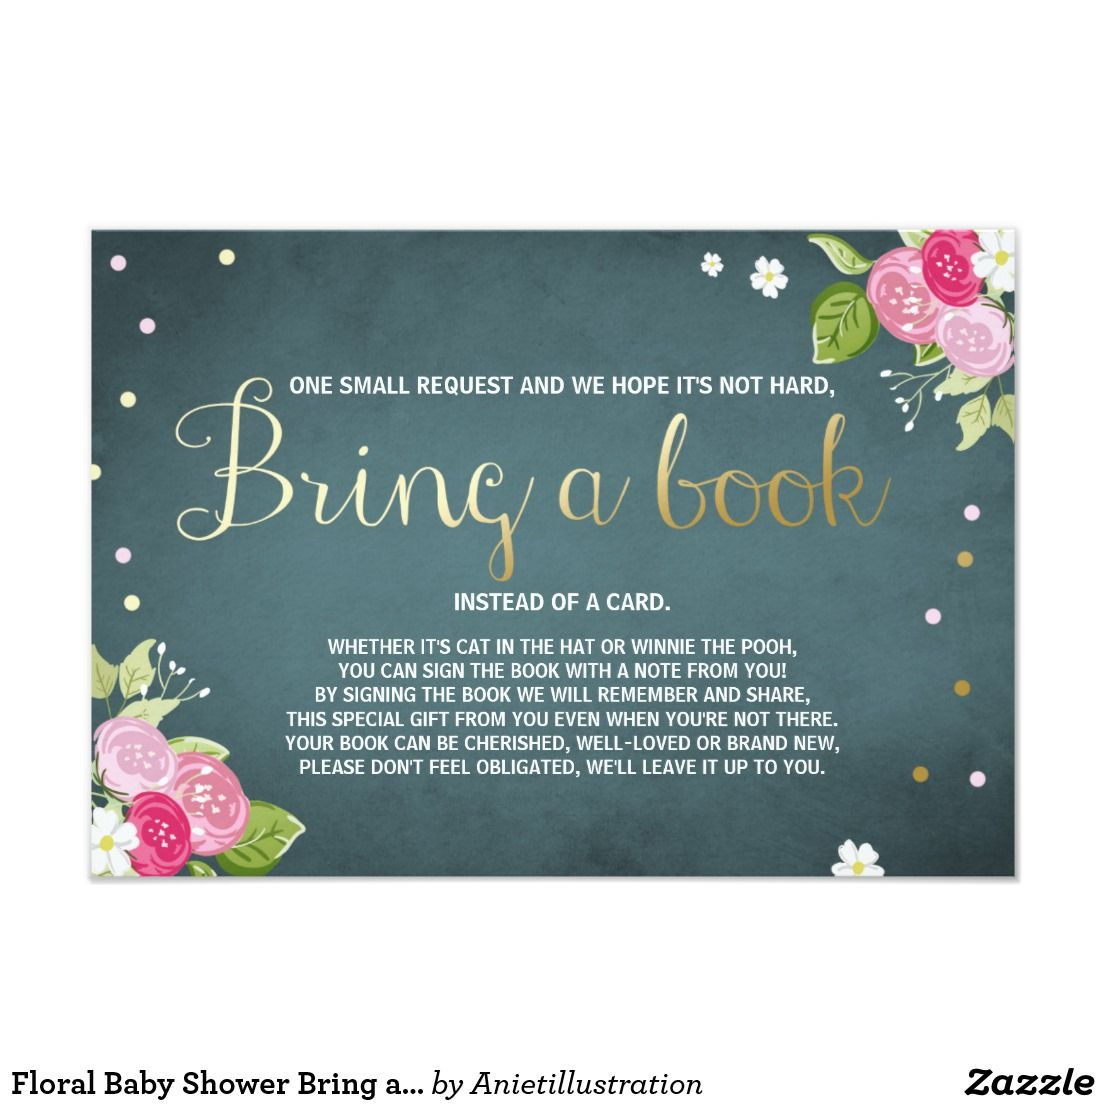 Floral Baby Shower Bring a book card Pink and gold | Zazzle.com | Floral  baby shower, Baby shower, Gold baby showers